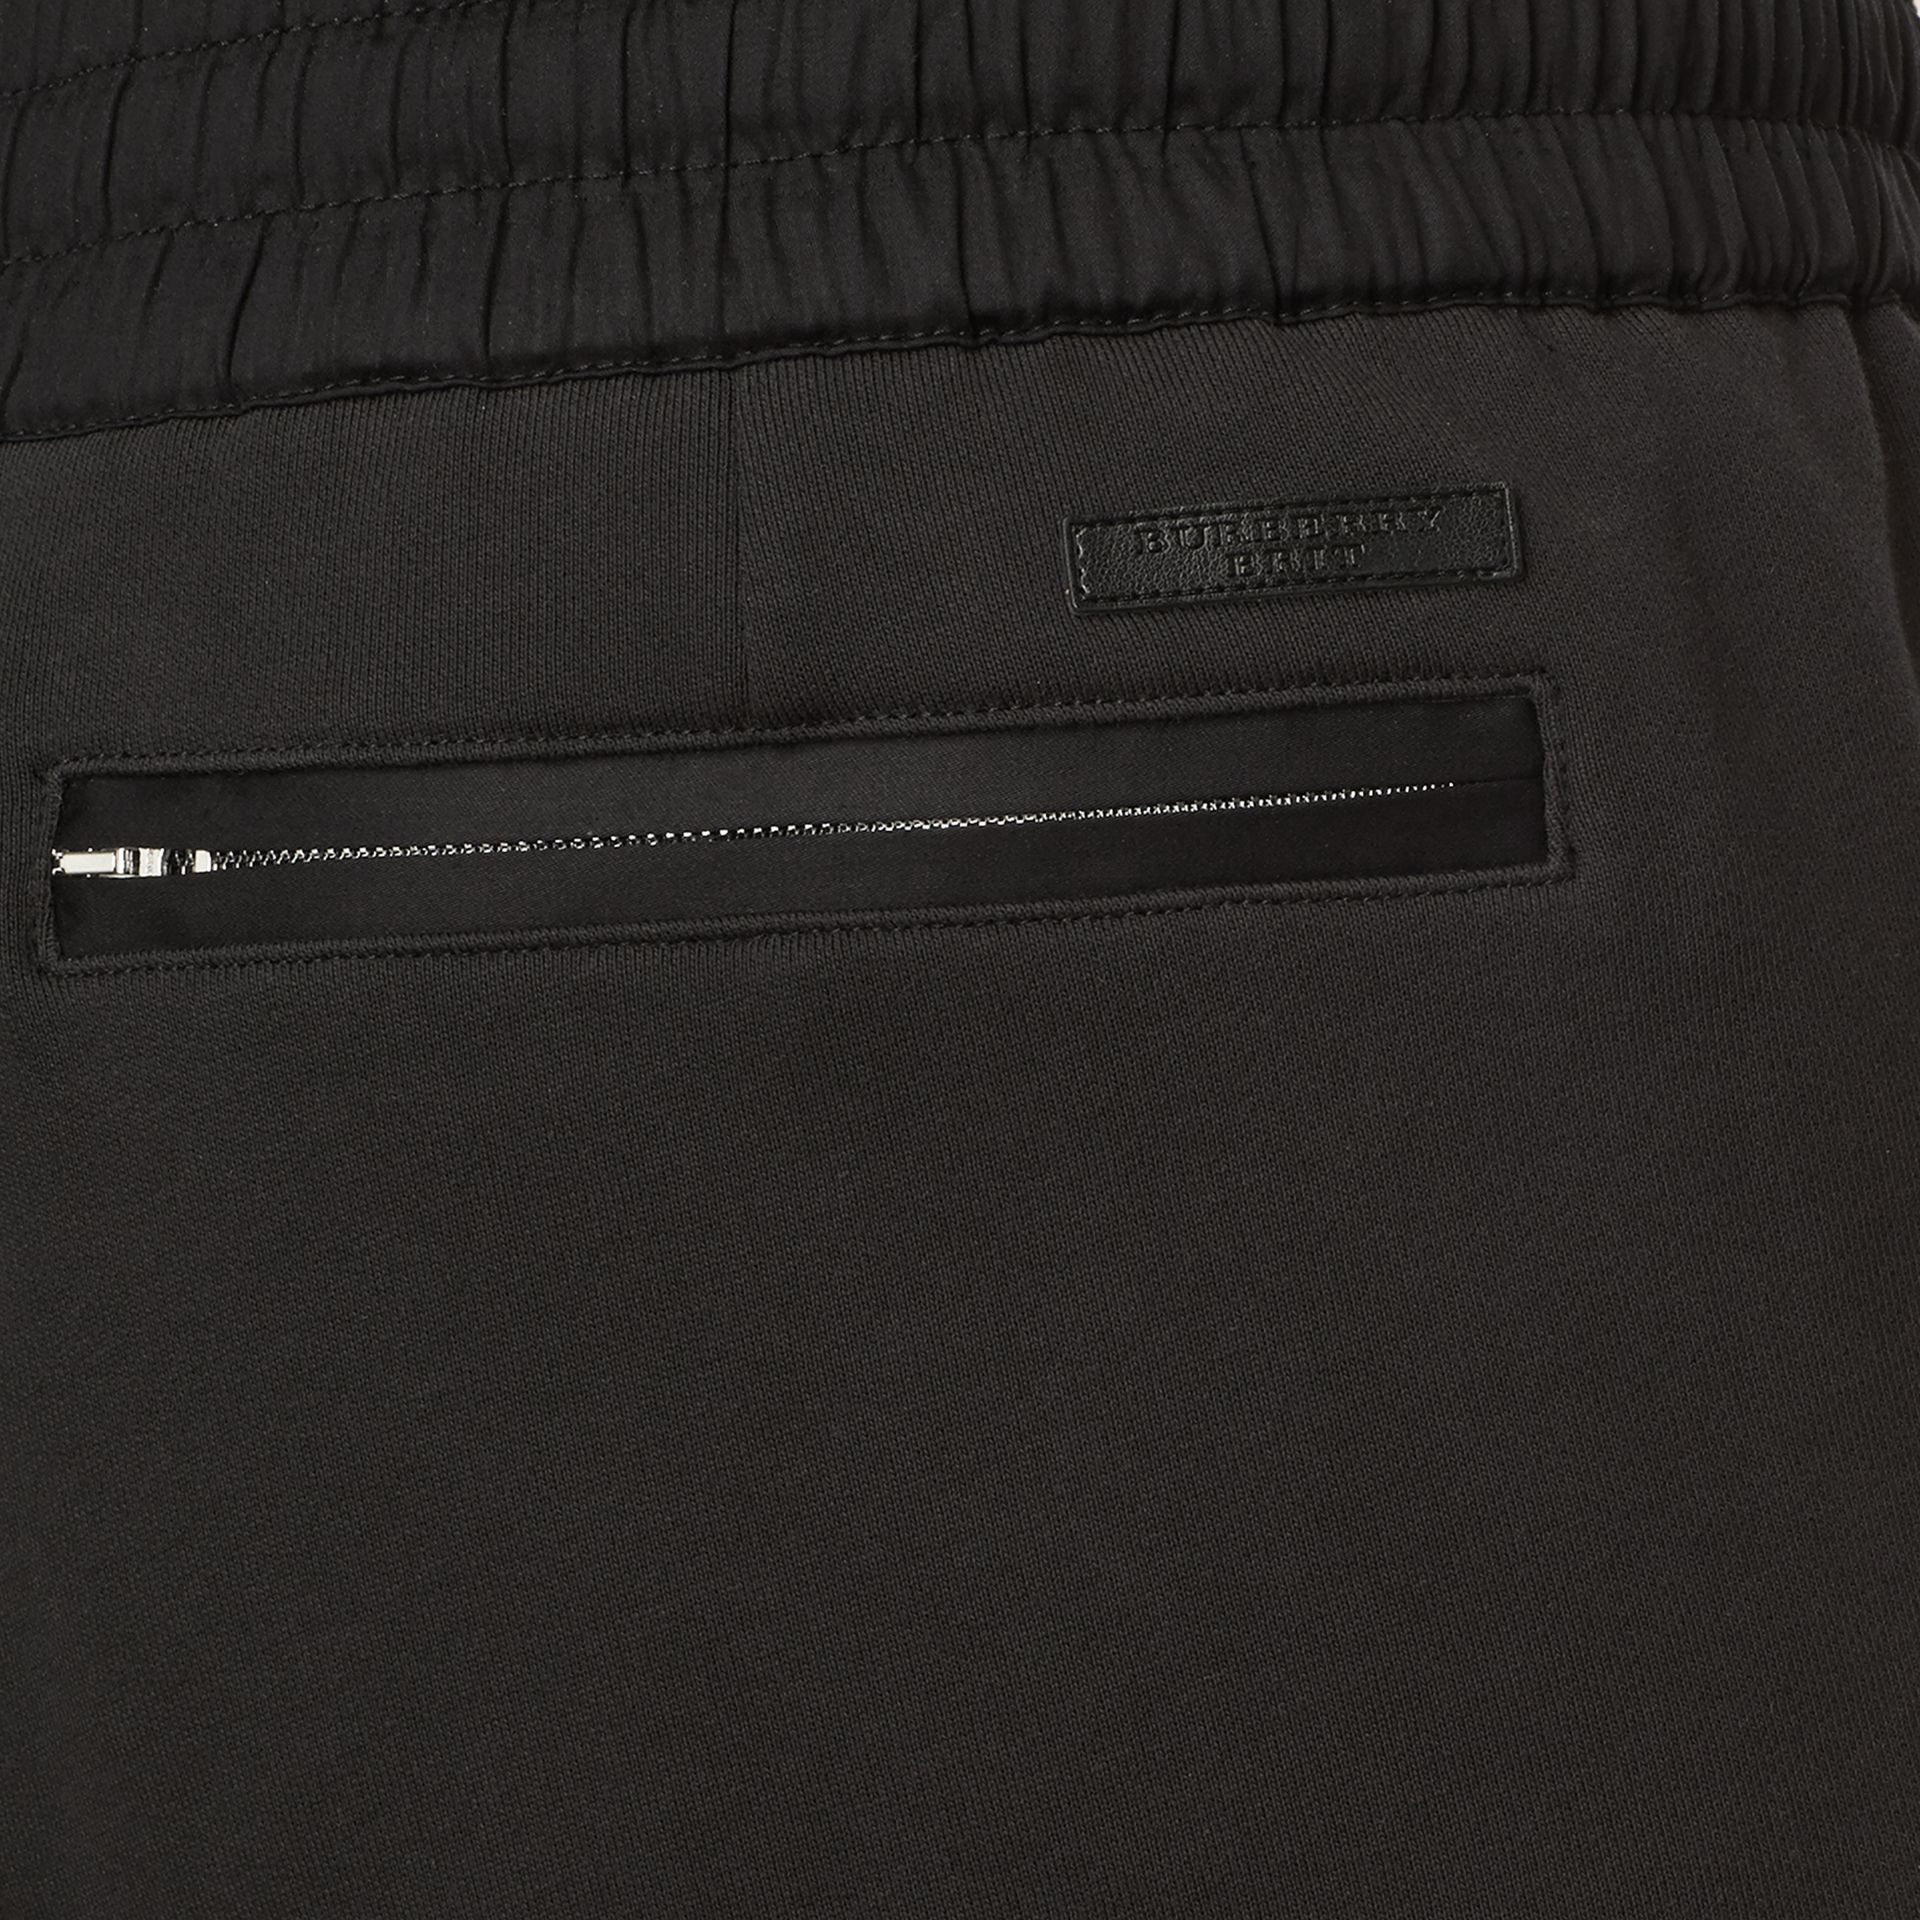 Cotton Sweatpants in Black - Men | Burberry Canada - gallery image 2